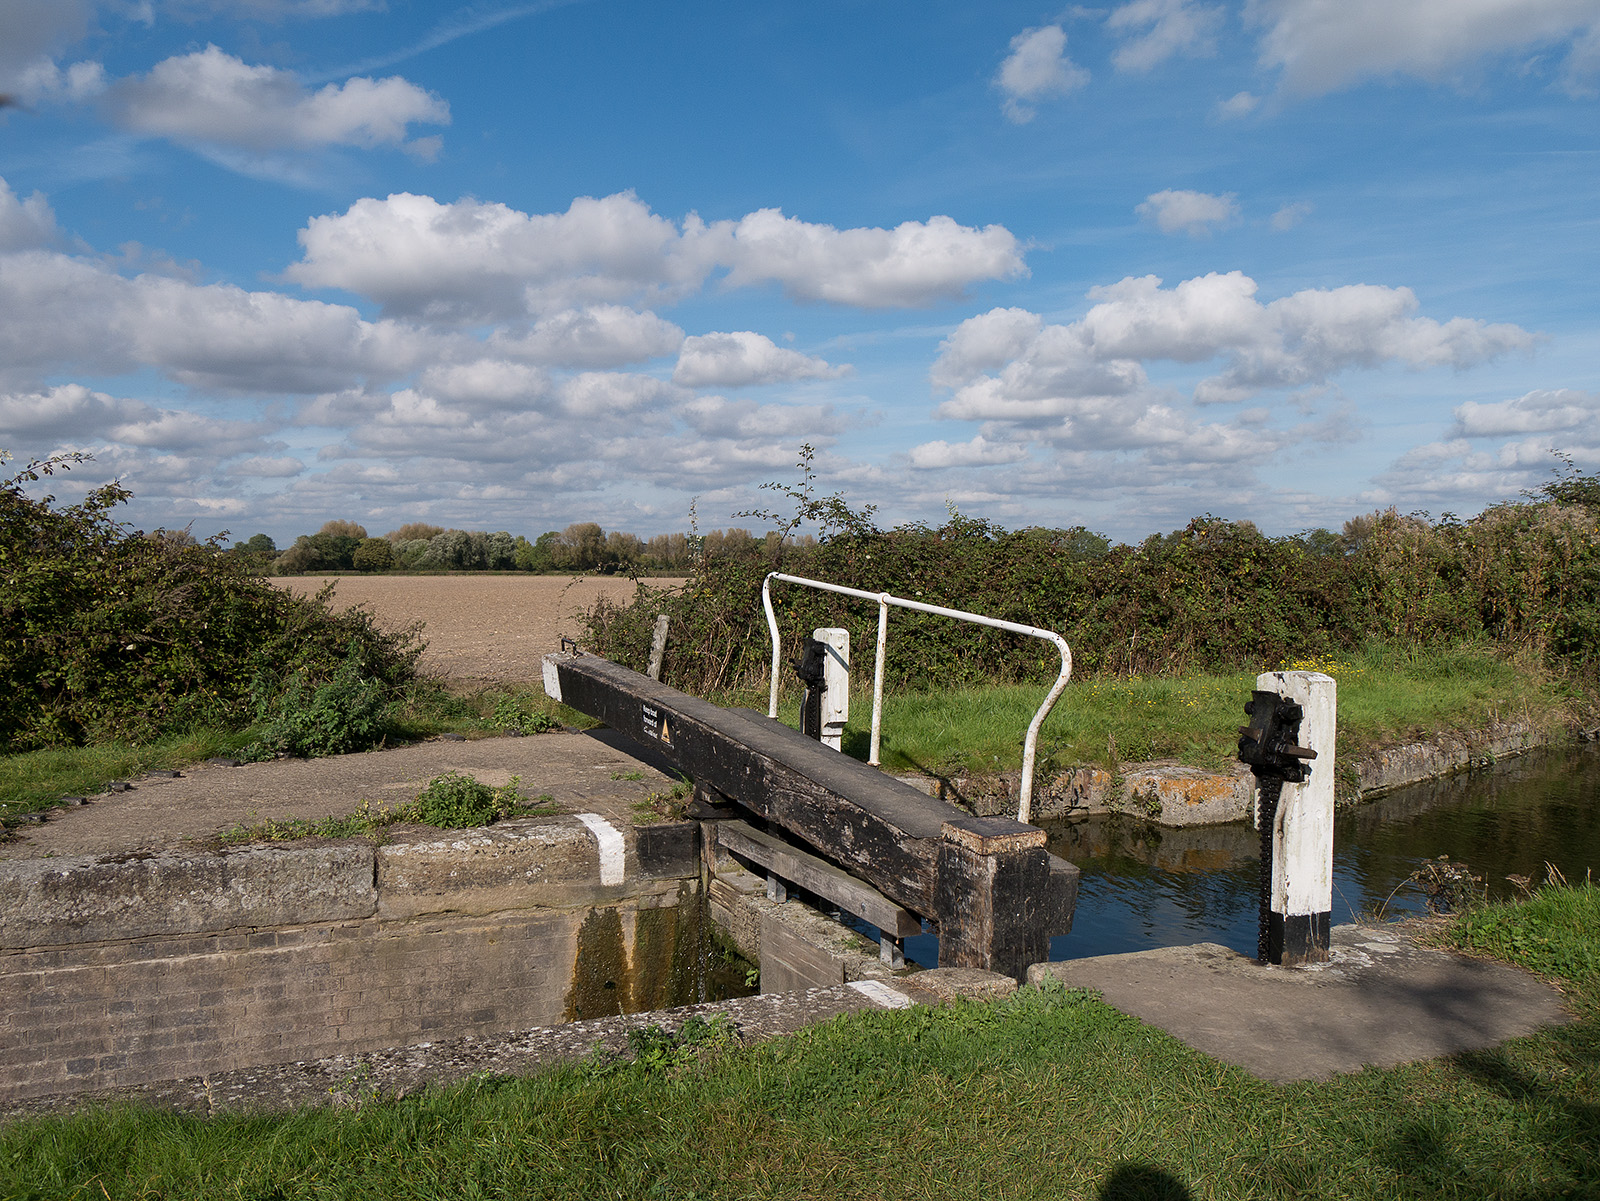 Another single lock gate with narrow lock channel.